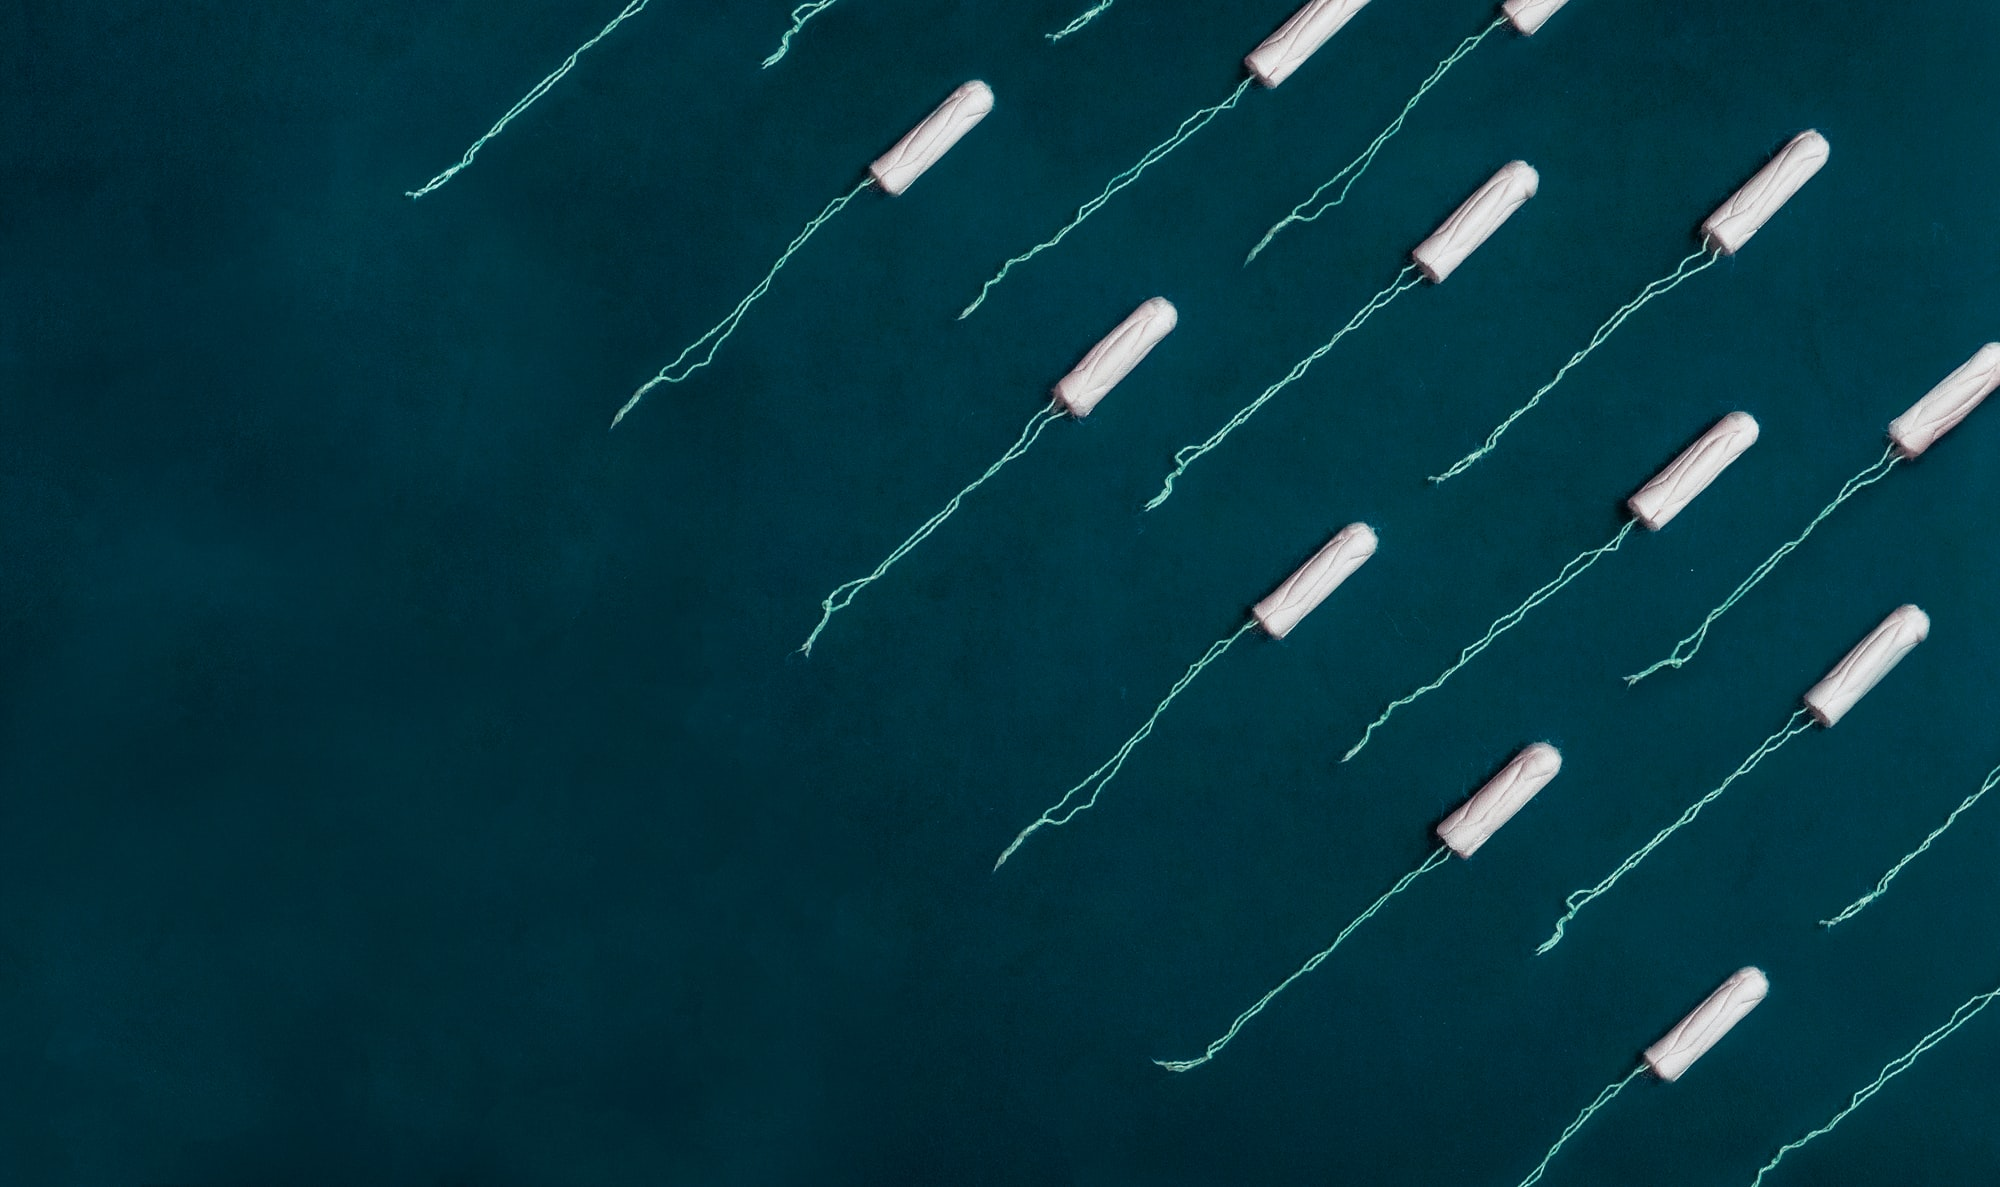 Tampons on Unsplash